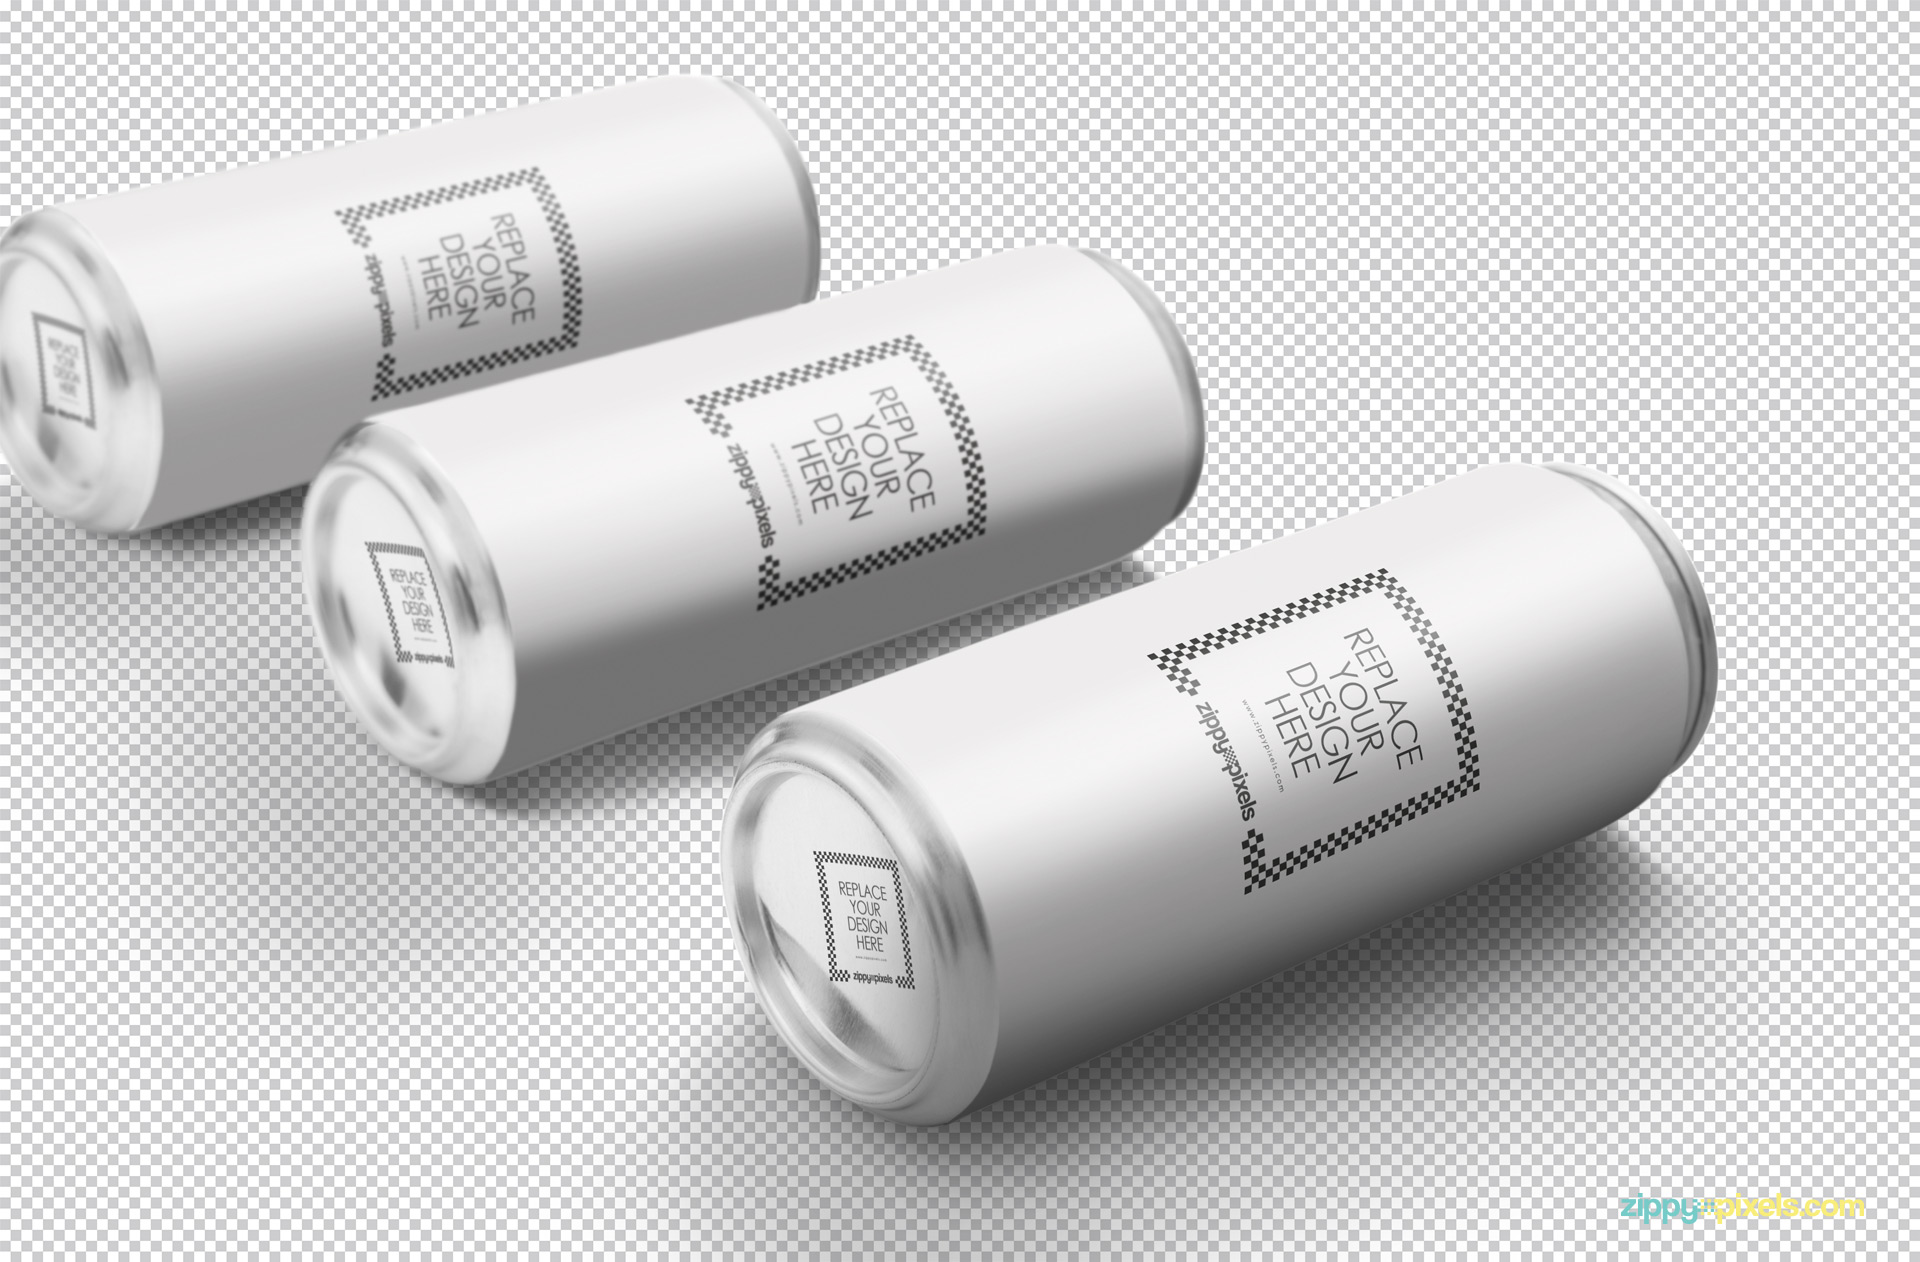 Three plain soda can mockup isolate with greyscale background.